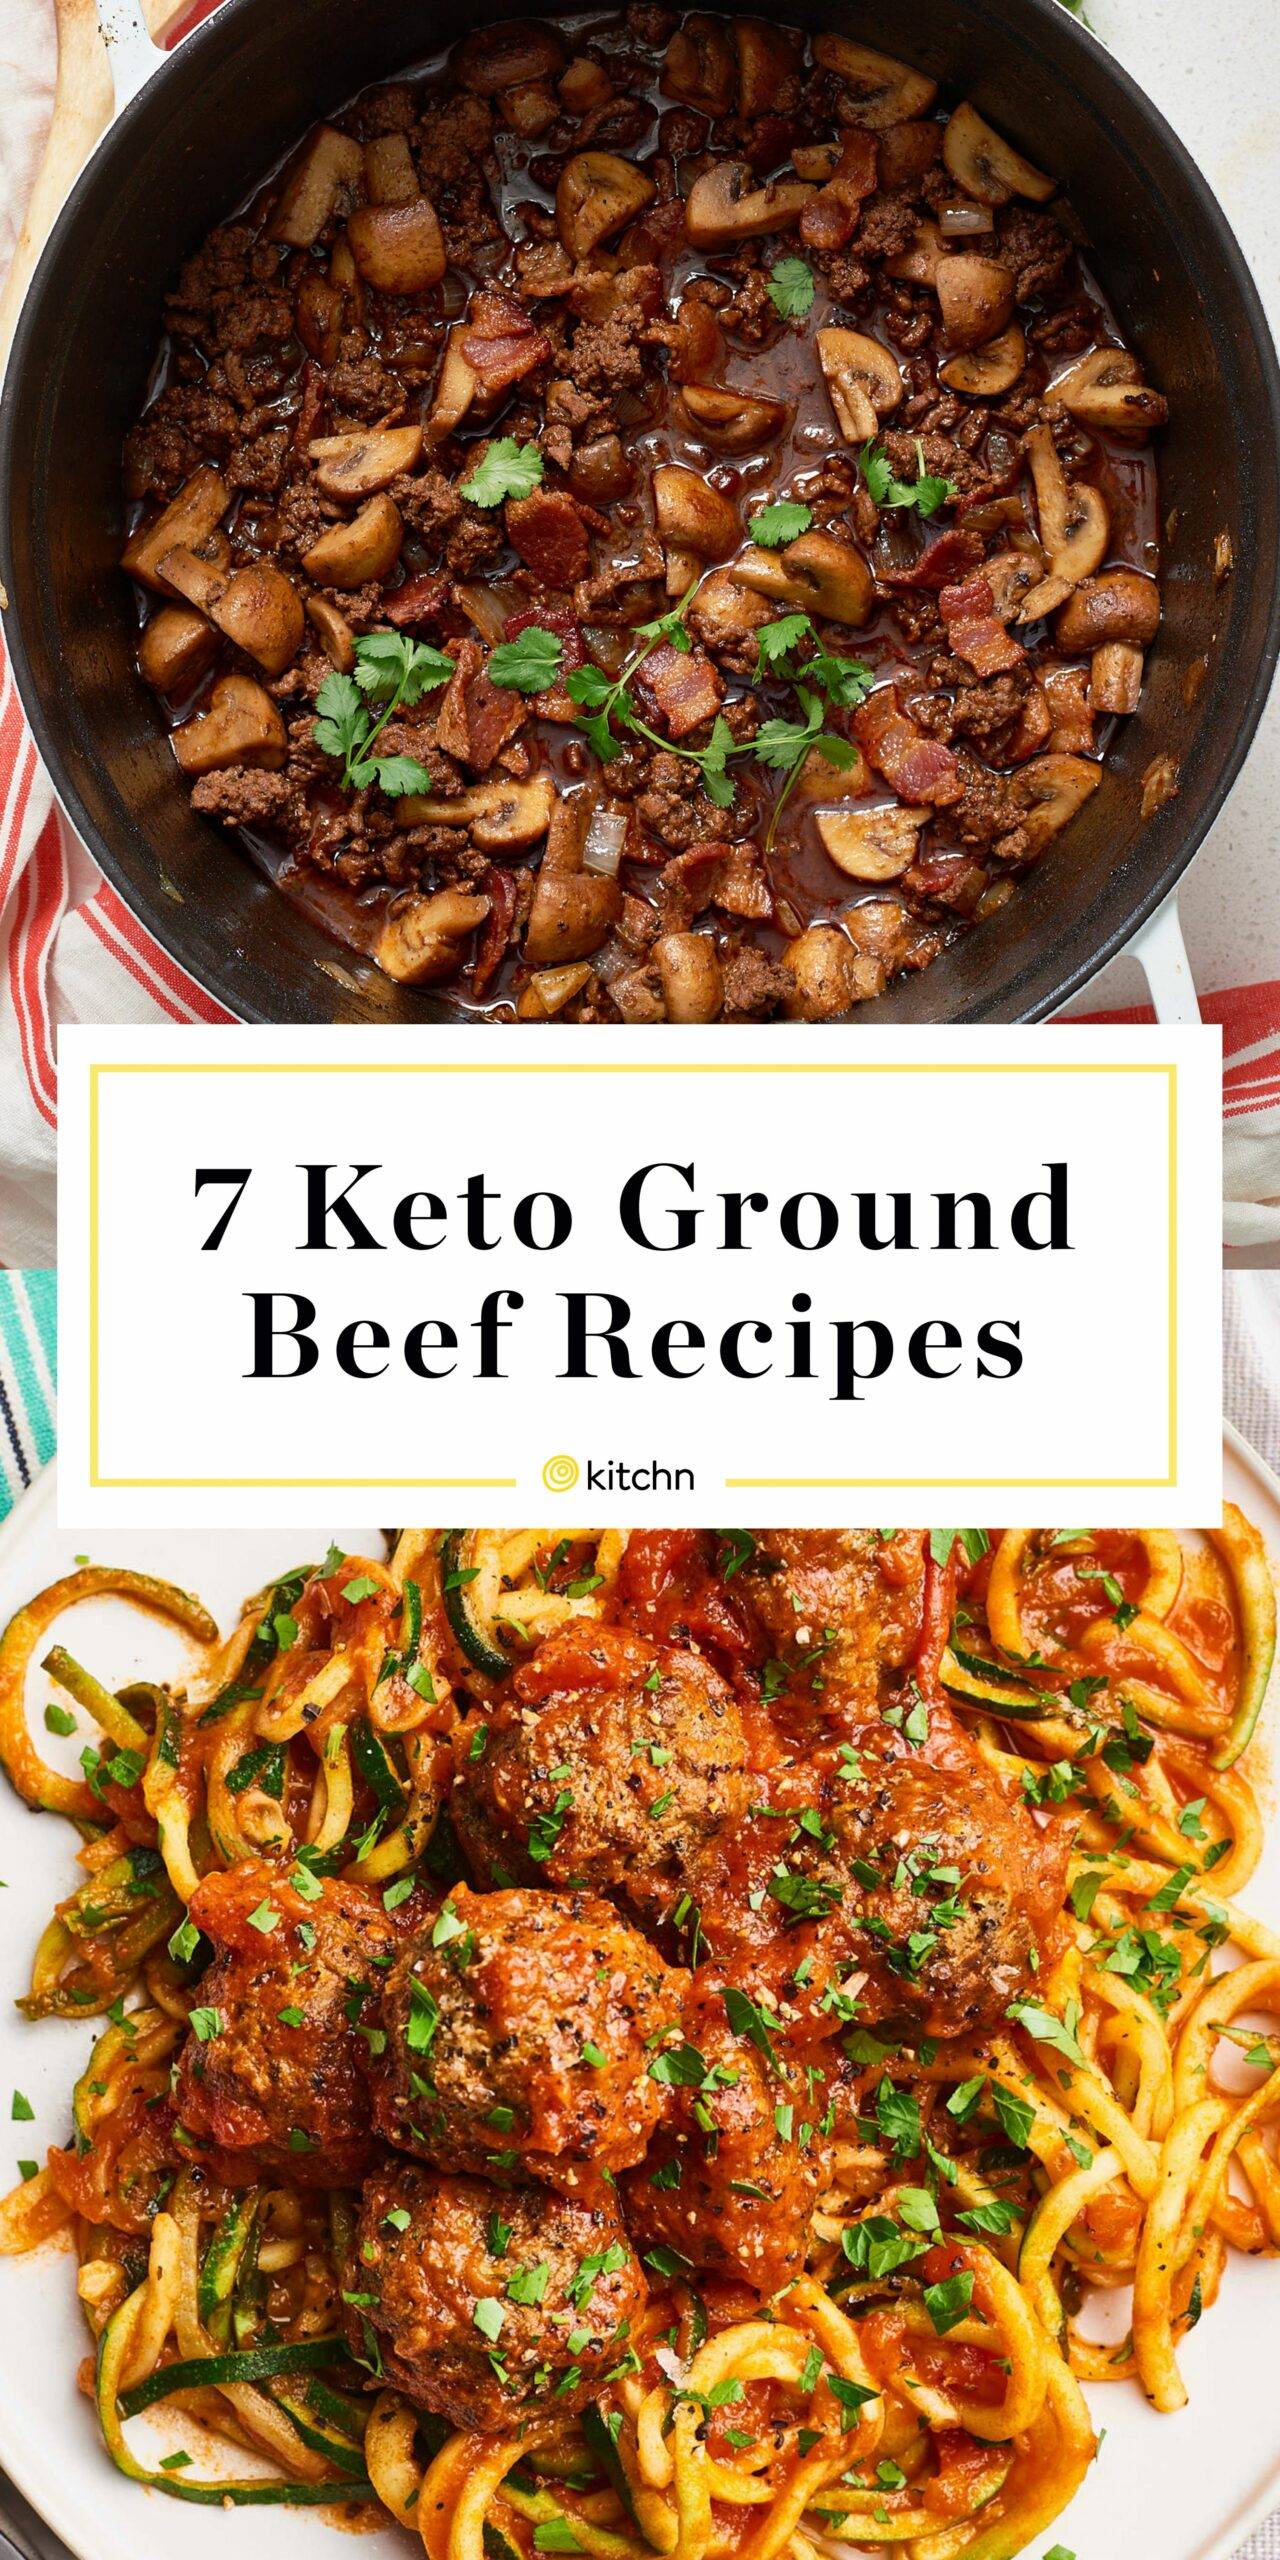 11 Keto Recipes Using Ground Beef | Kitchn